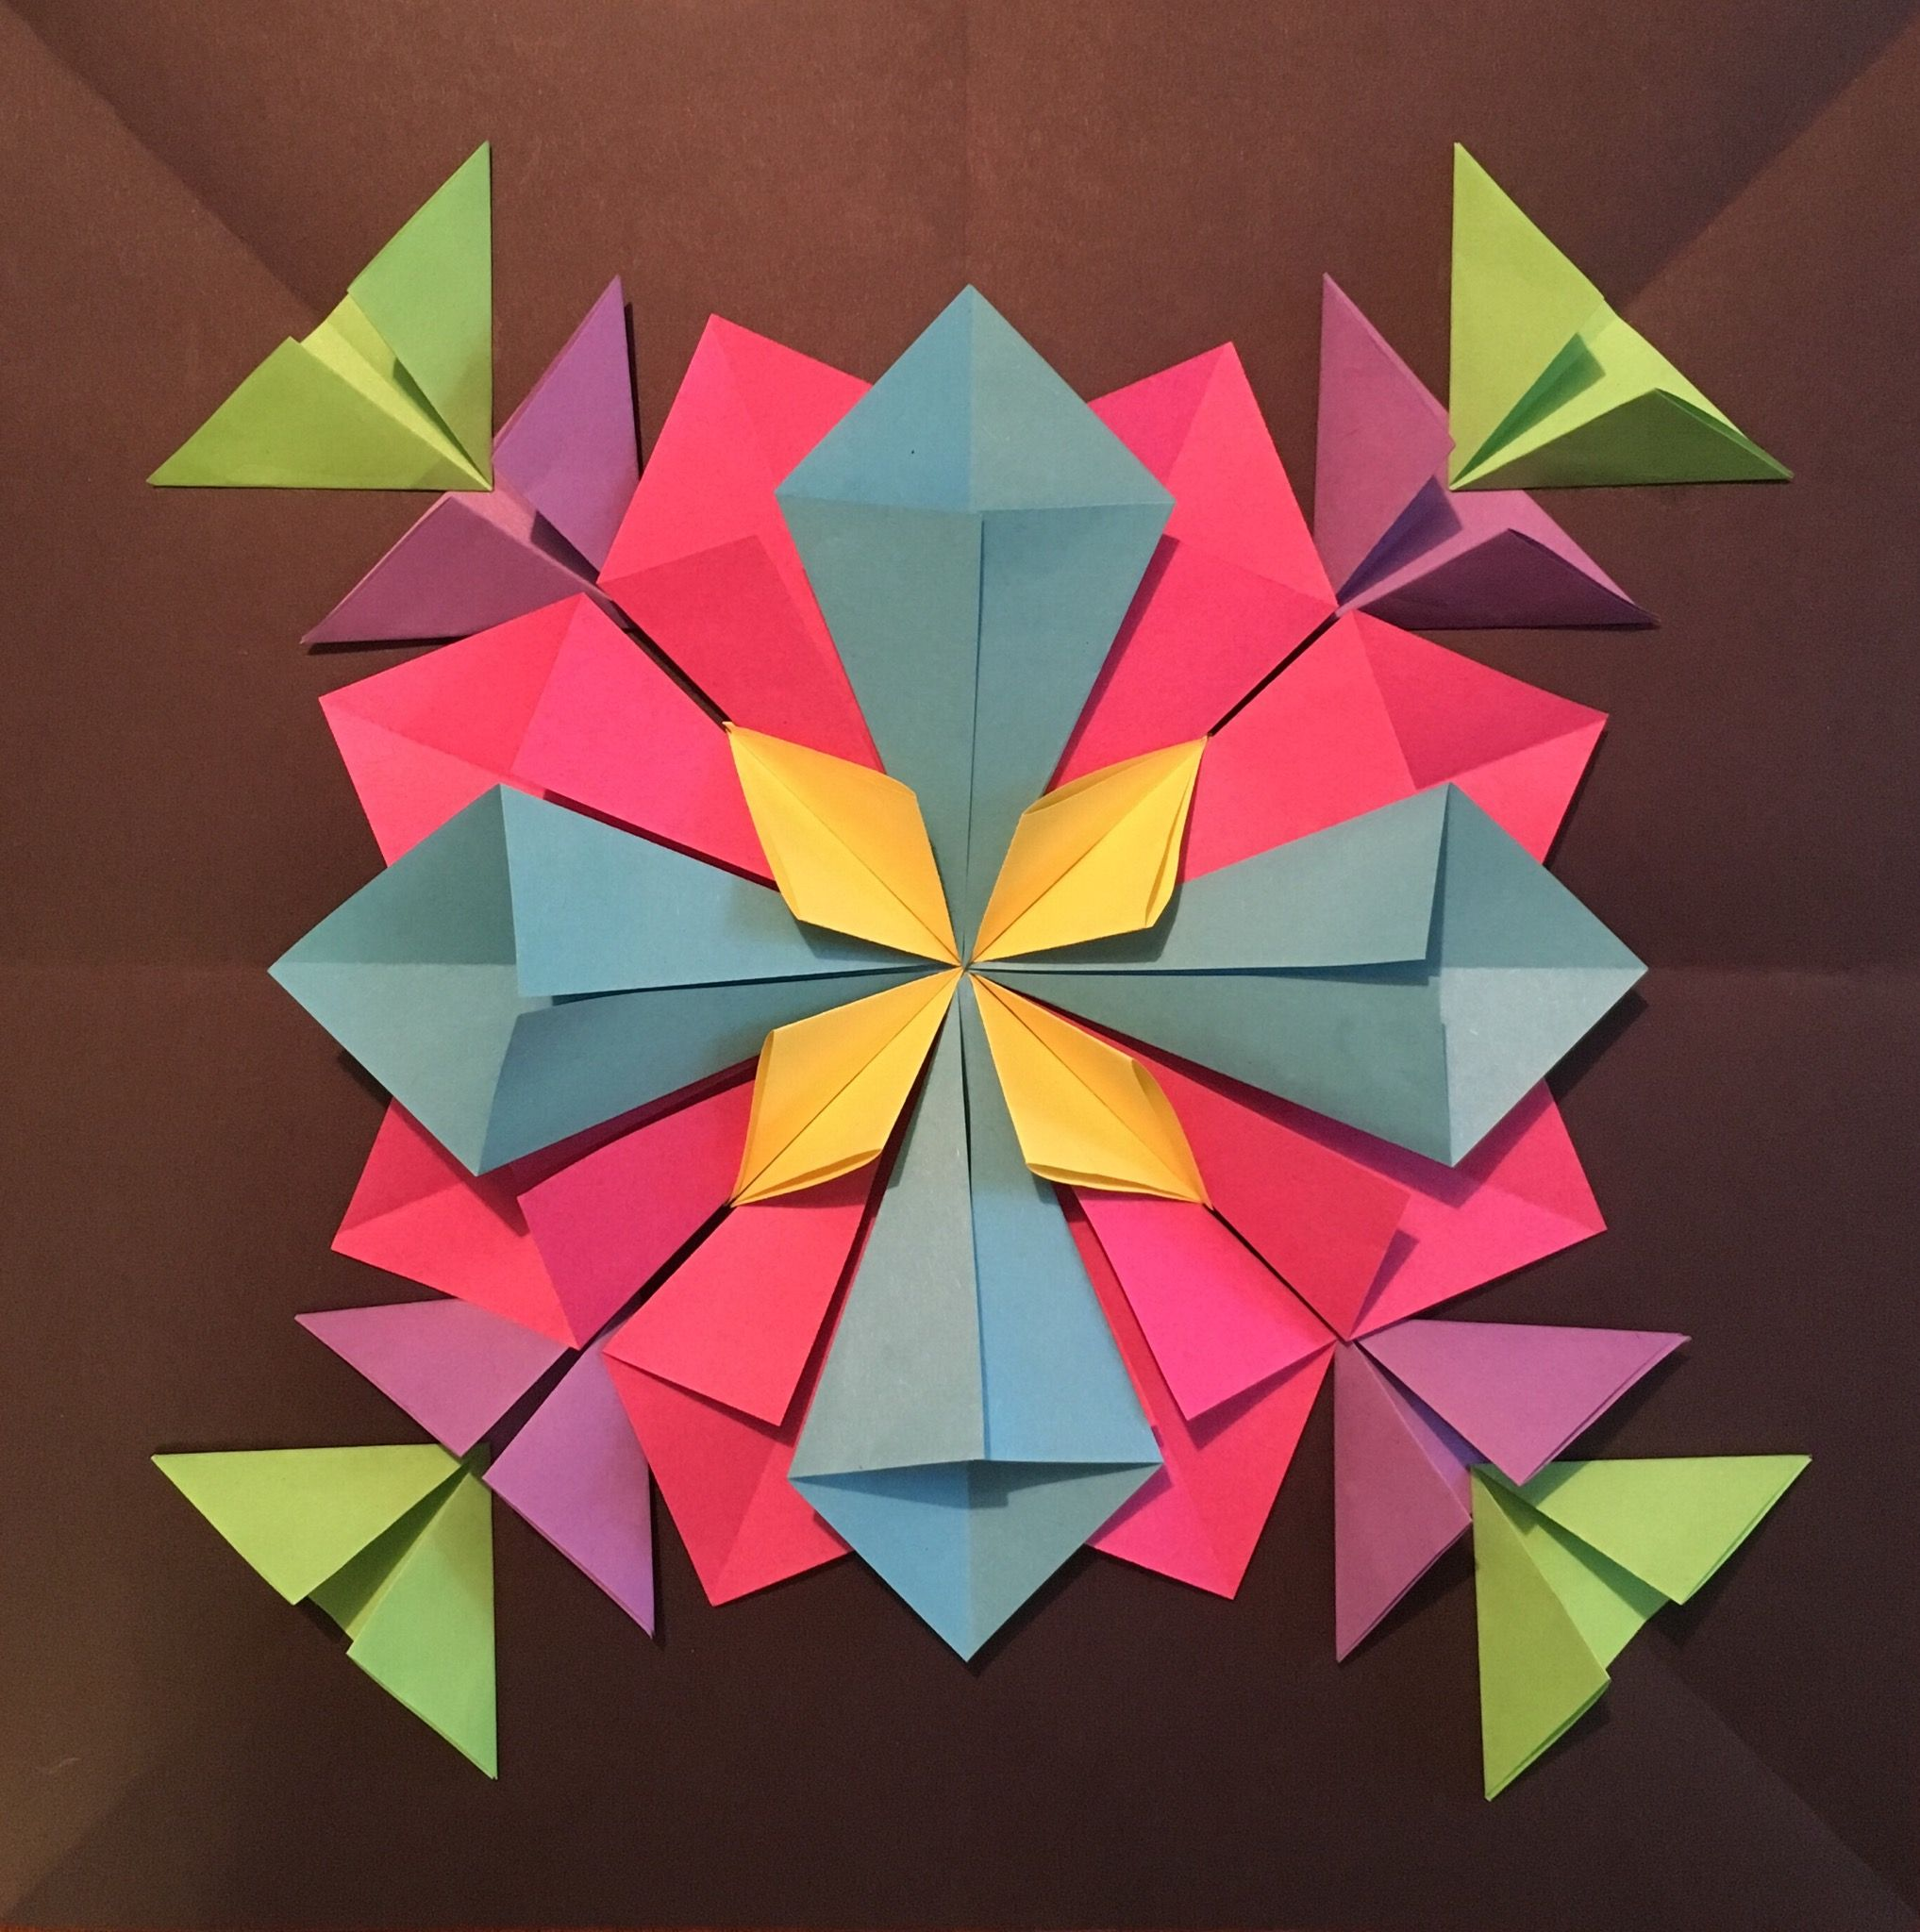 How to Create a 3D Radial Symmetry Paper Sculpture | sculpture ...